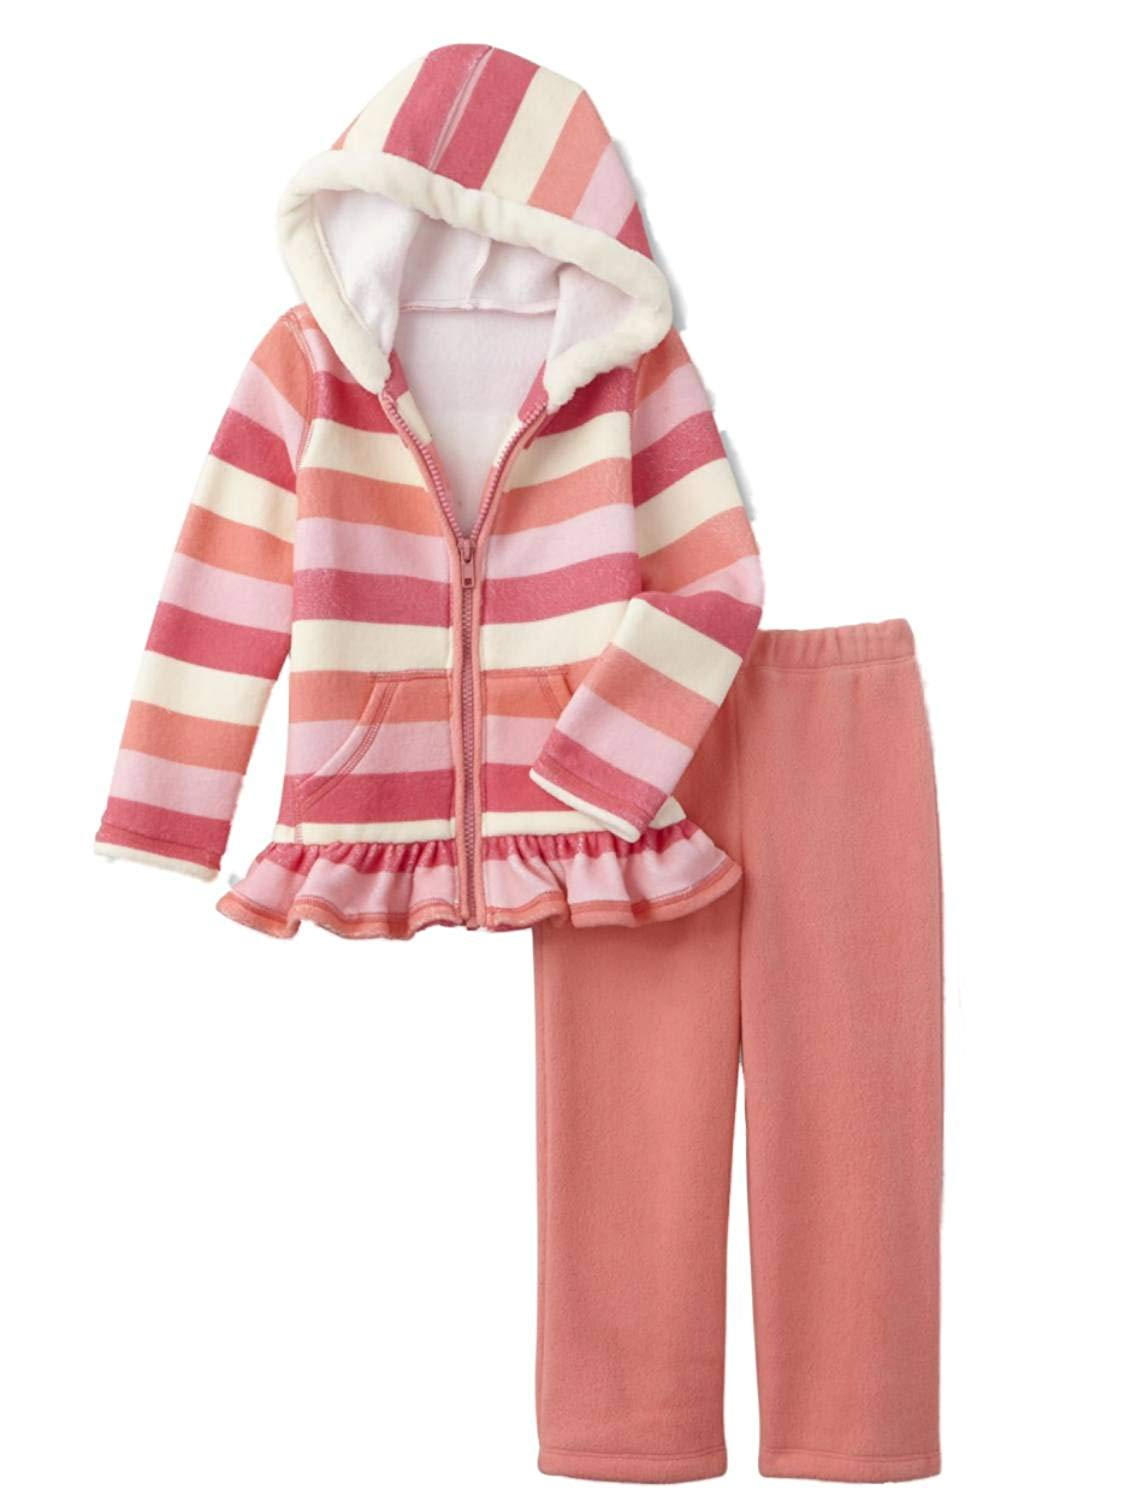 Young Hearts Infant Girls Pink & Peach 2 Piece Set Coral & White Hoodie & Leggings Outfit